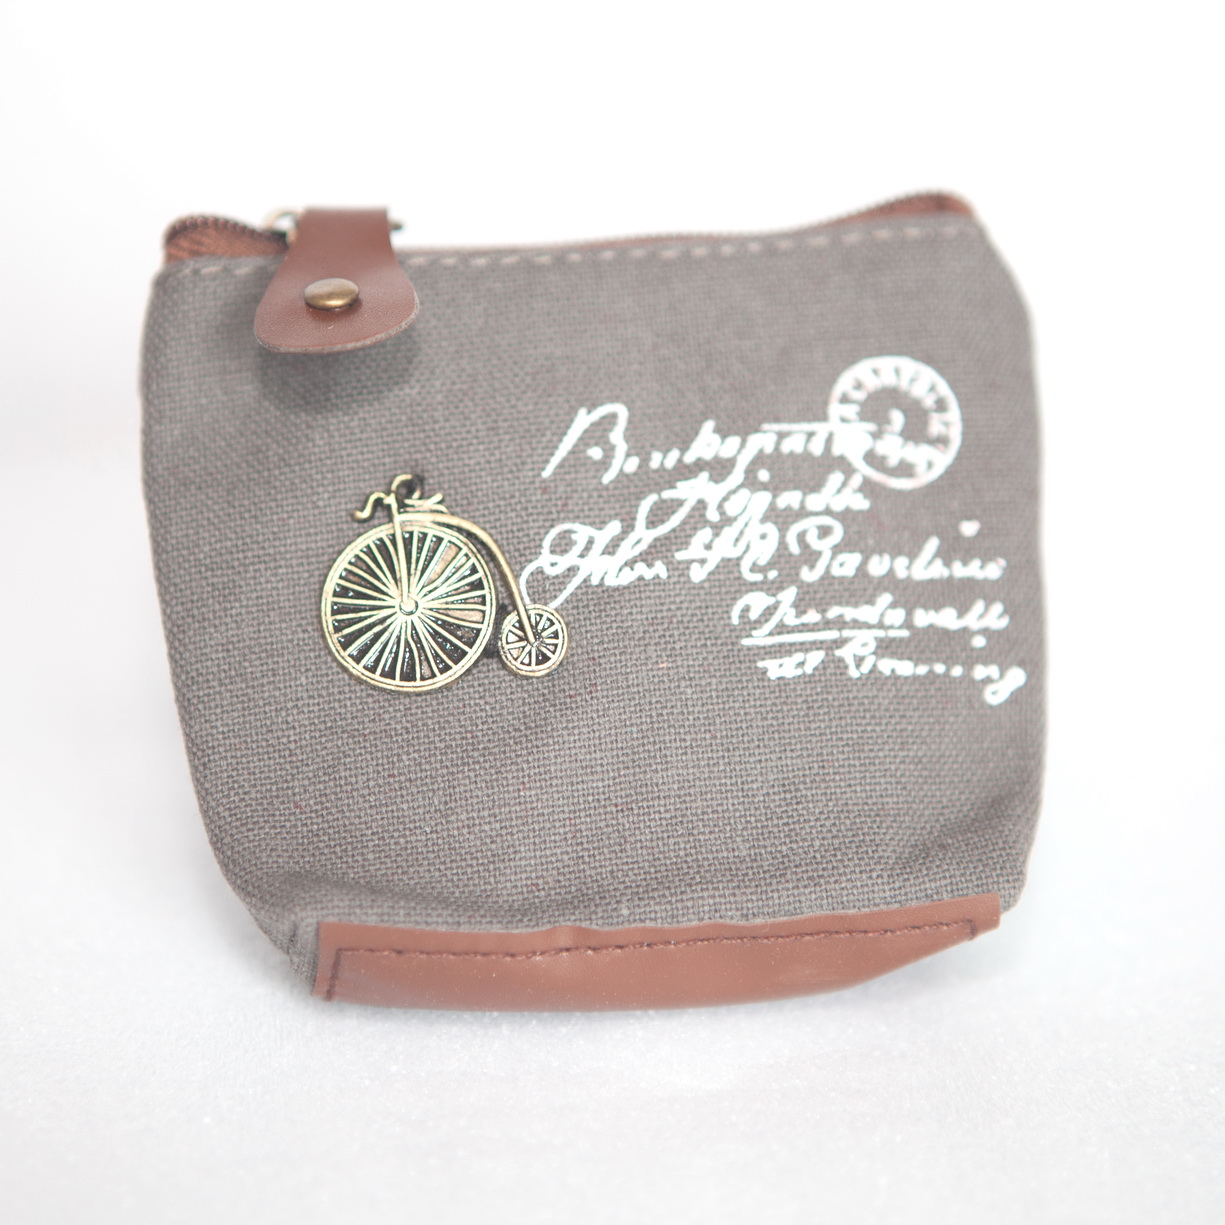 Coin Bag Coin Purse Louise Fans Club Onebuggy